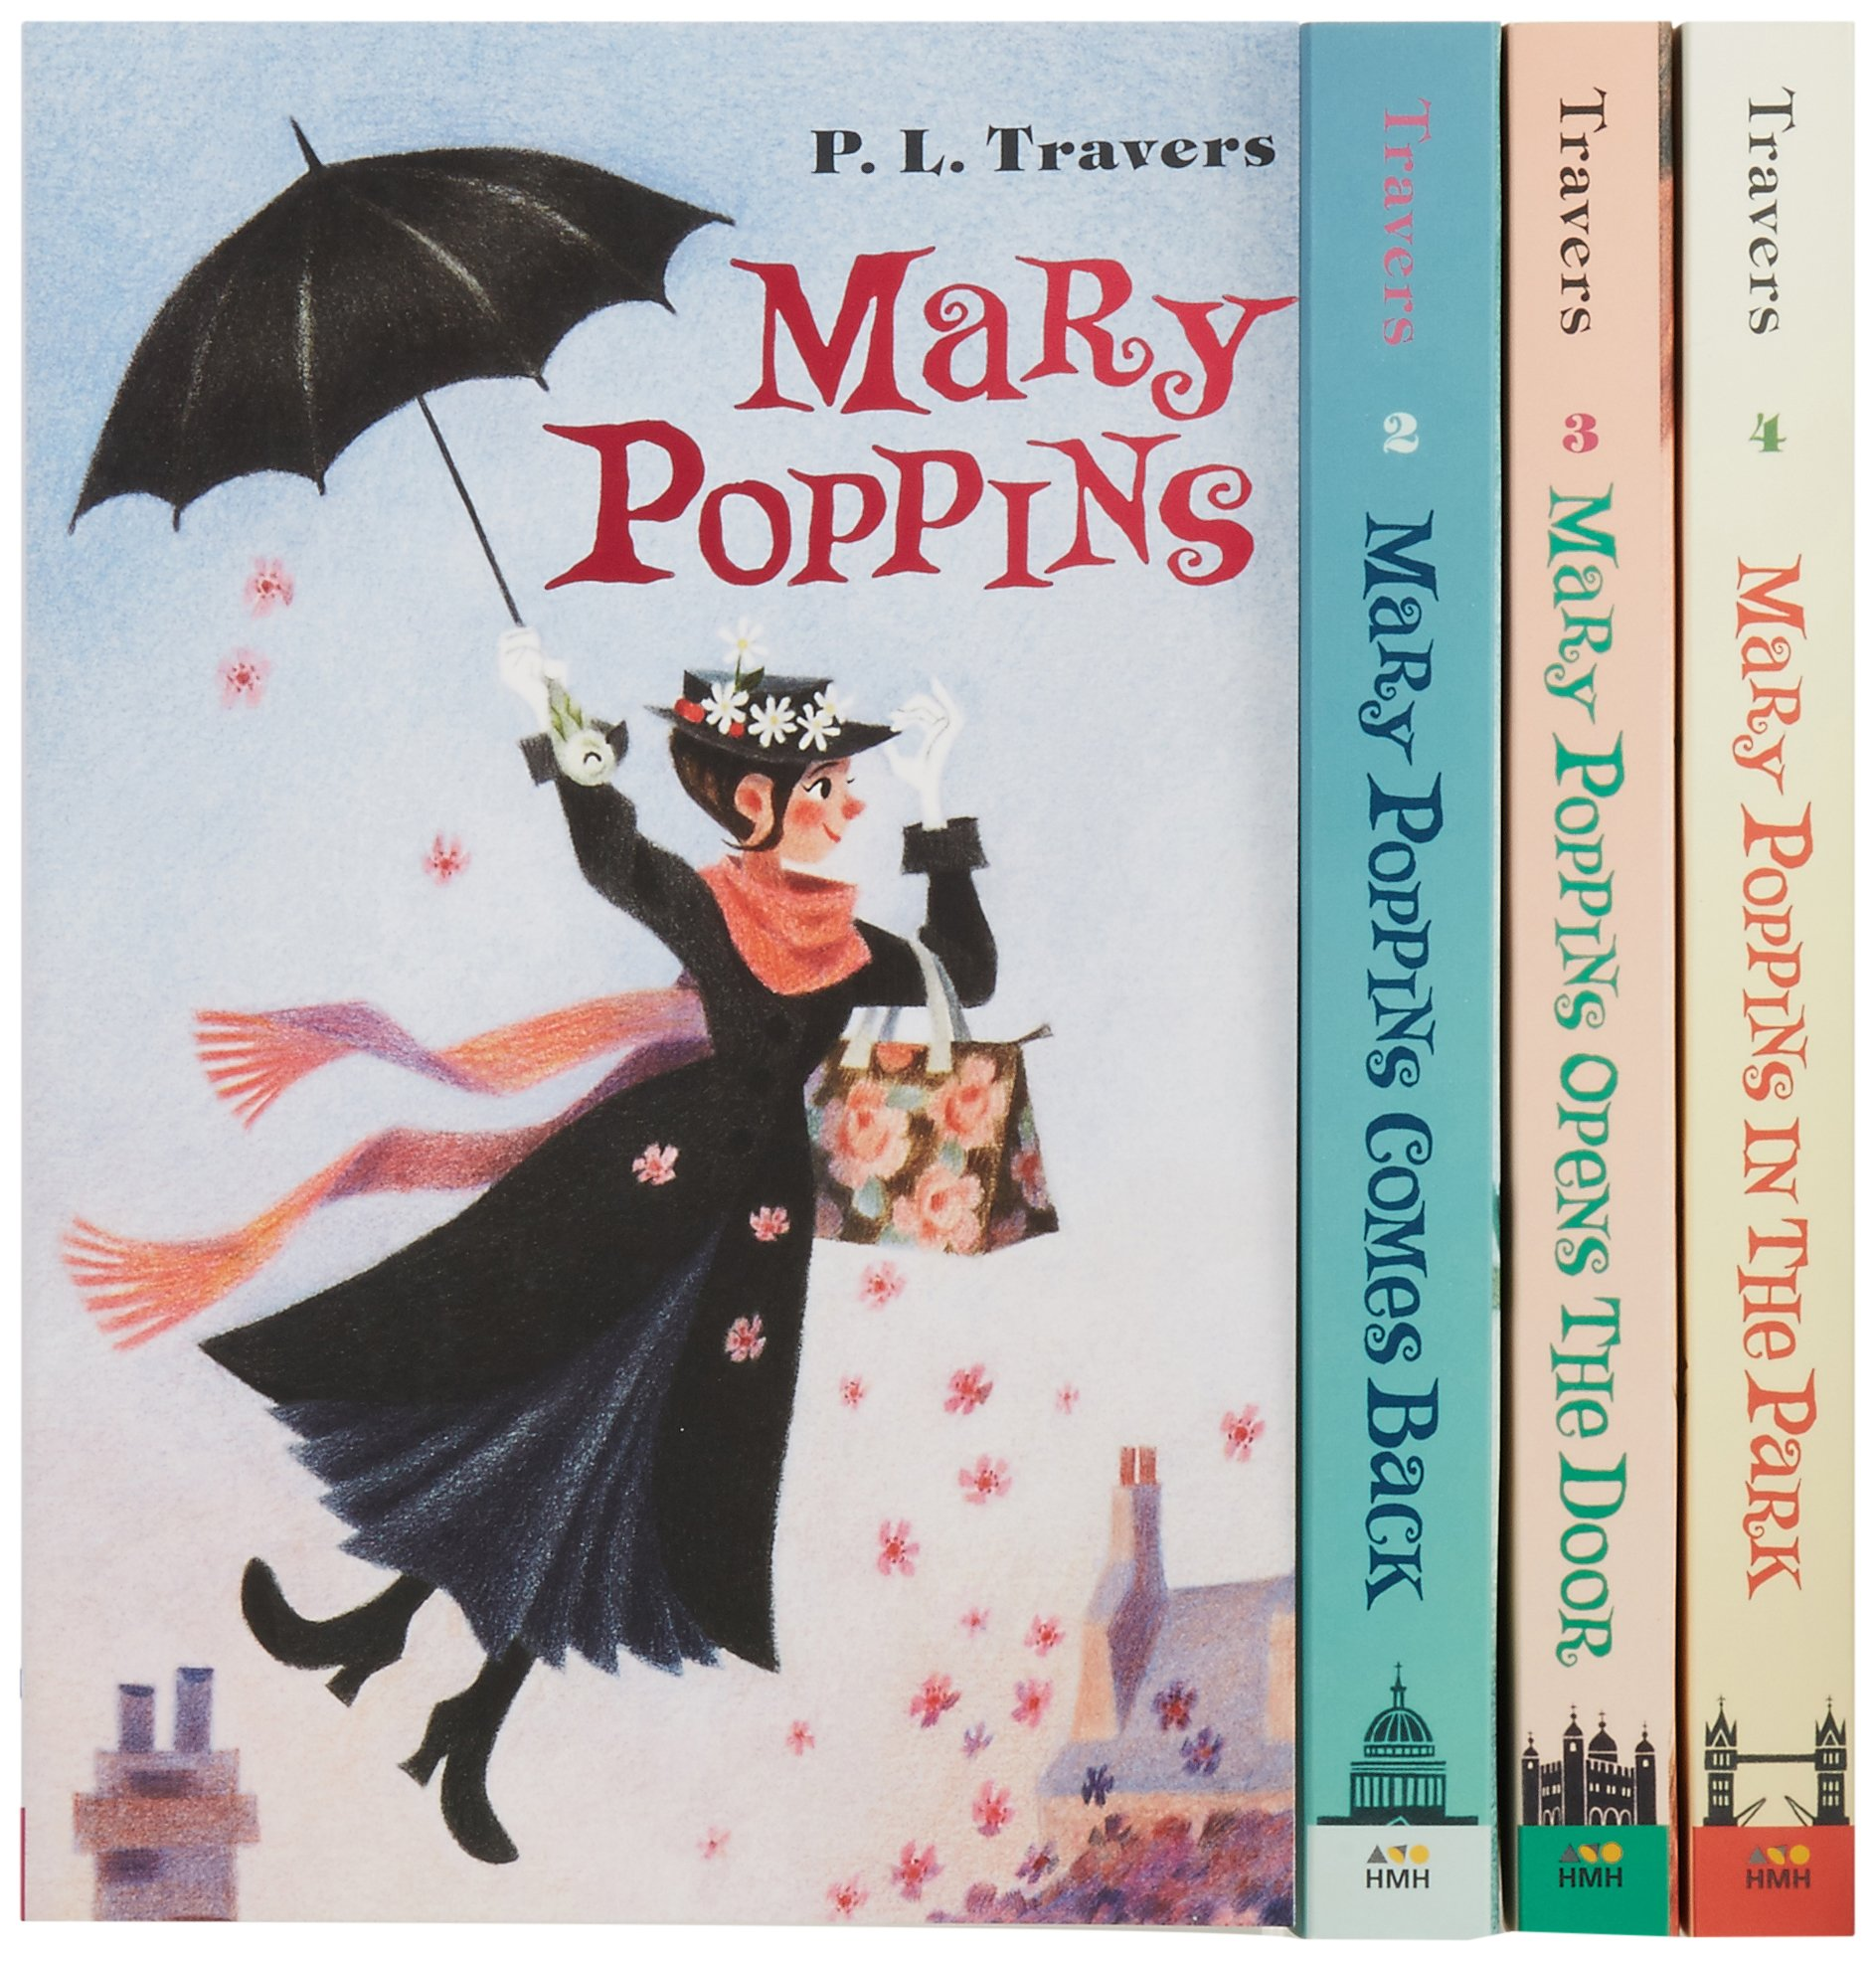 Mary Poppins Boxed Set Paperback by Dr. P. L. Travers (Author), Mary Shepard (Illustrator)